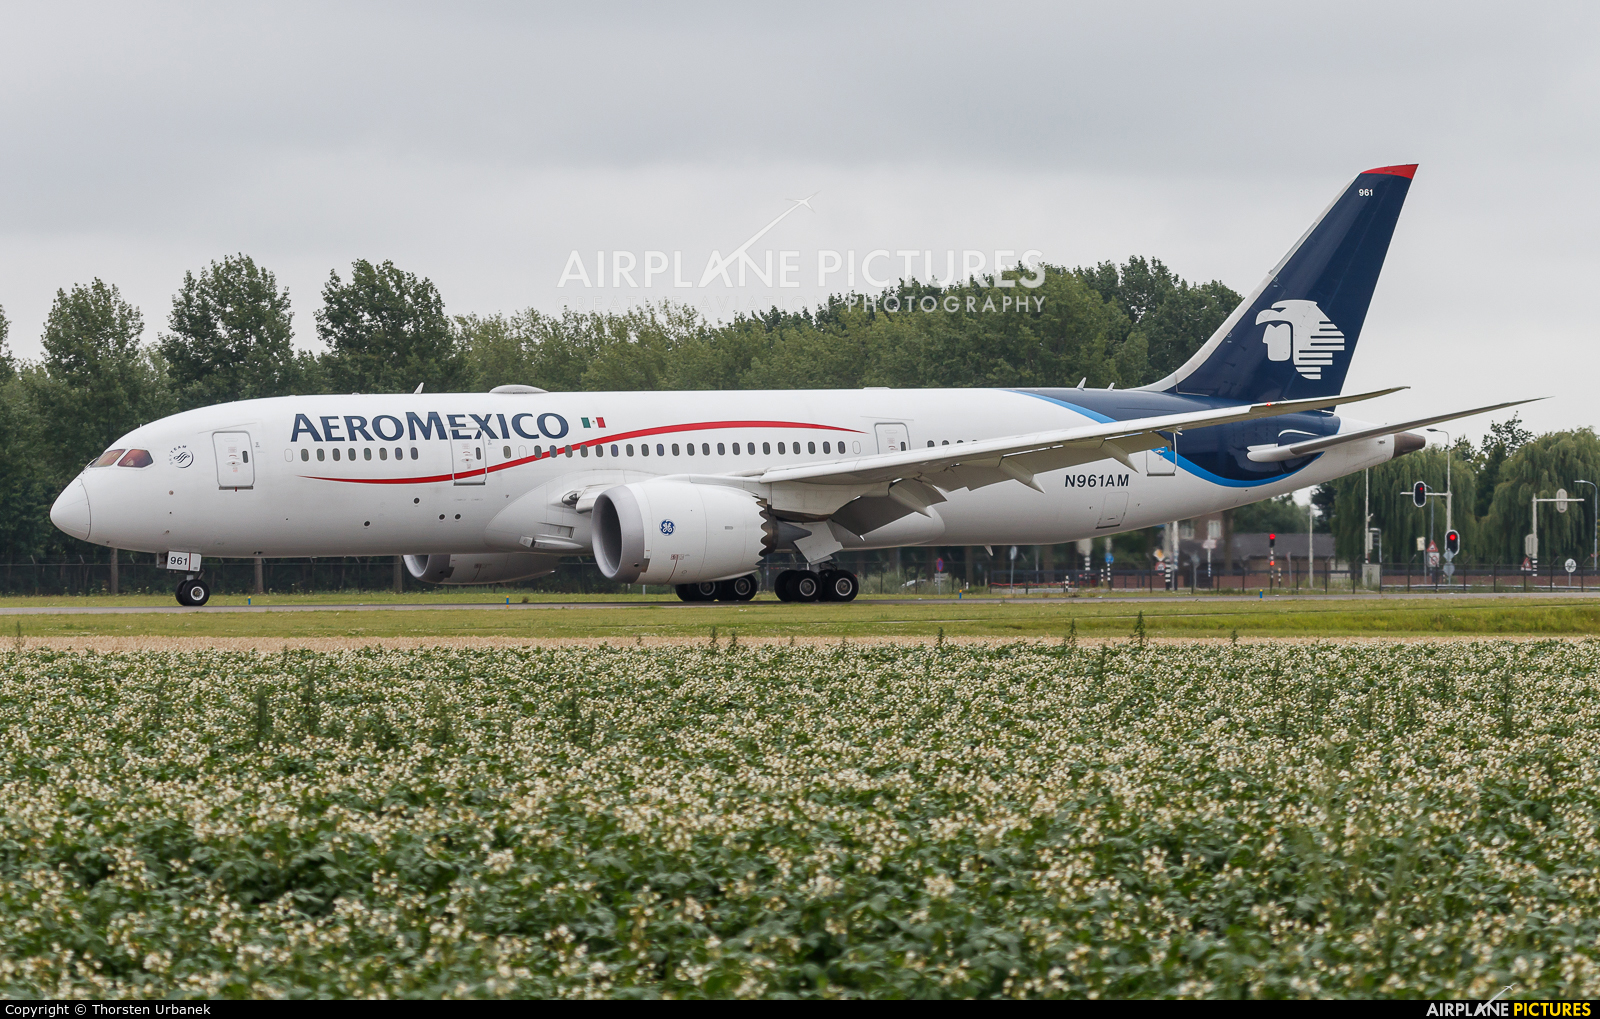 Aeromexico N961AM aircraft at Amsterdam - Schiphol